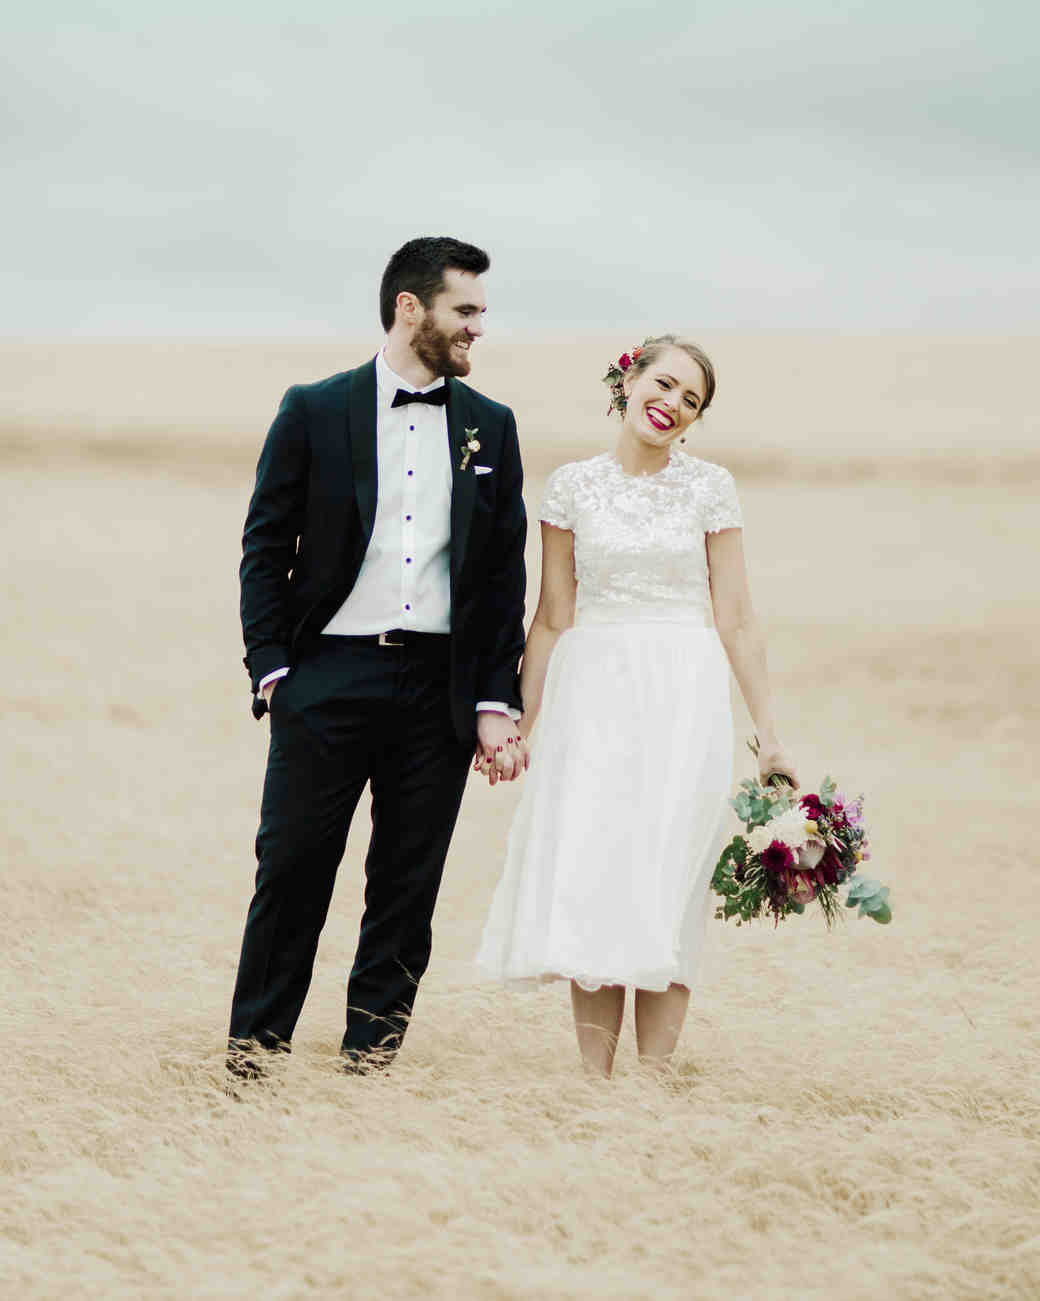 Short Wedding Dress Couple Standing Field: Edgy Tea Length Wedding Dresses At Reisefeber.org